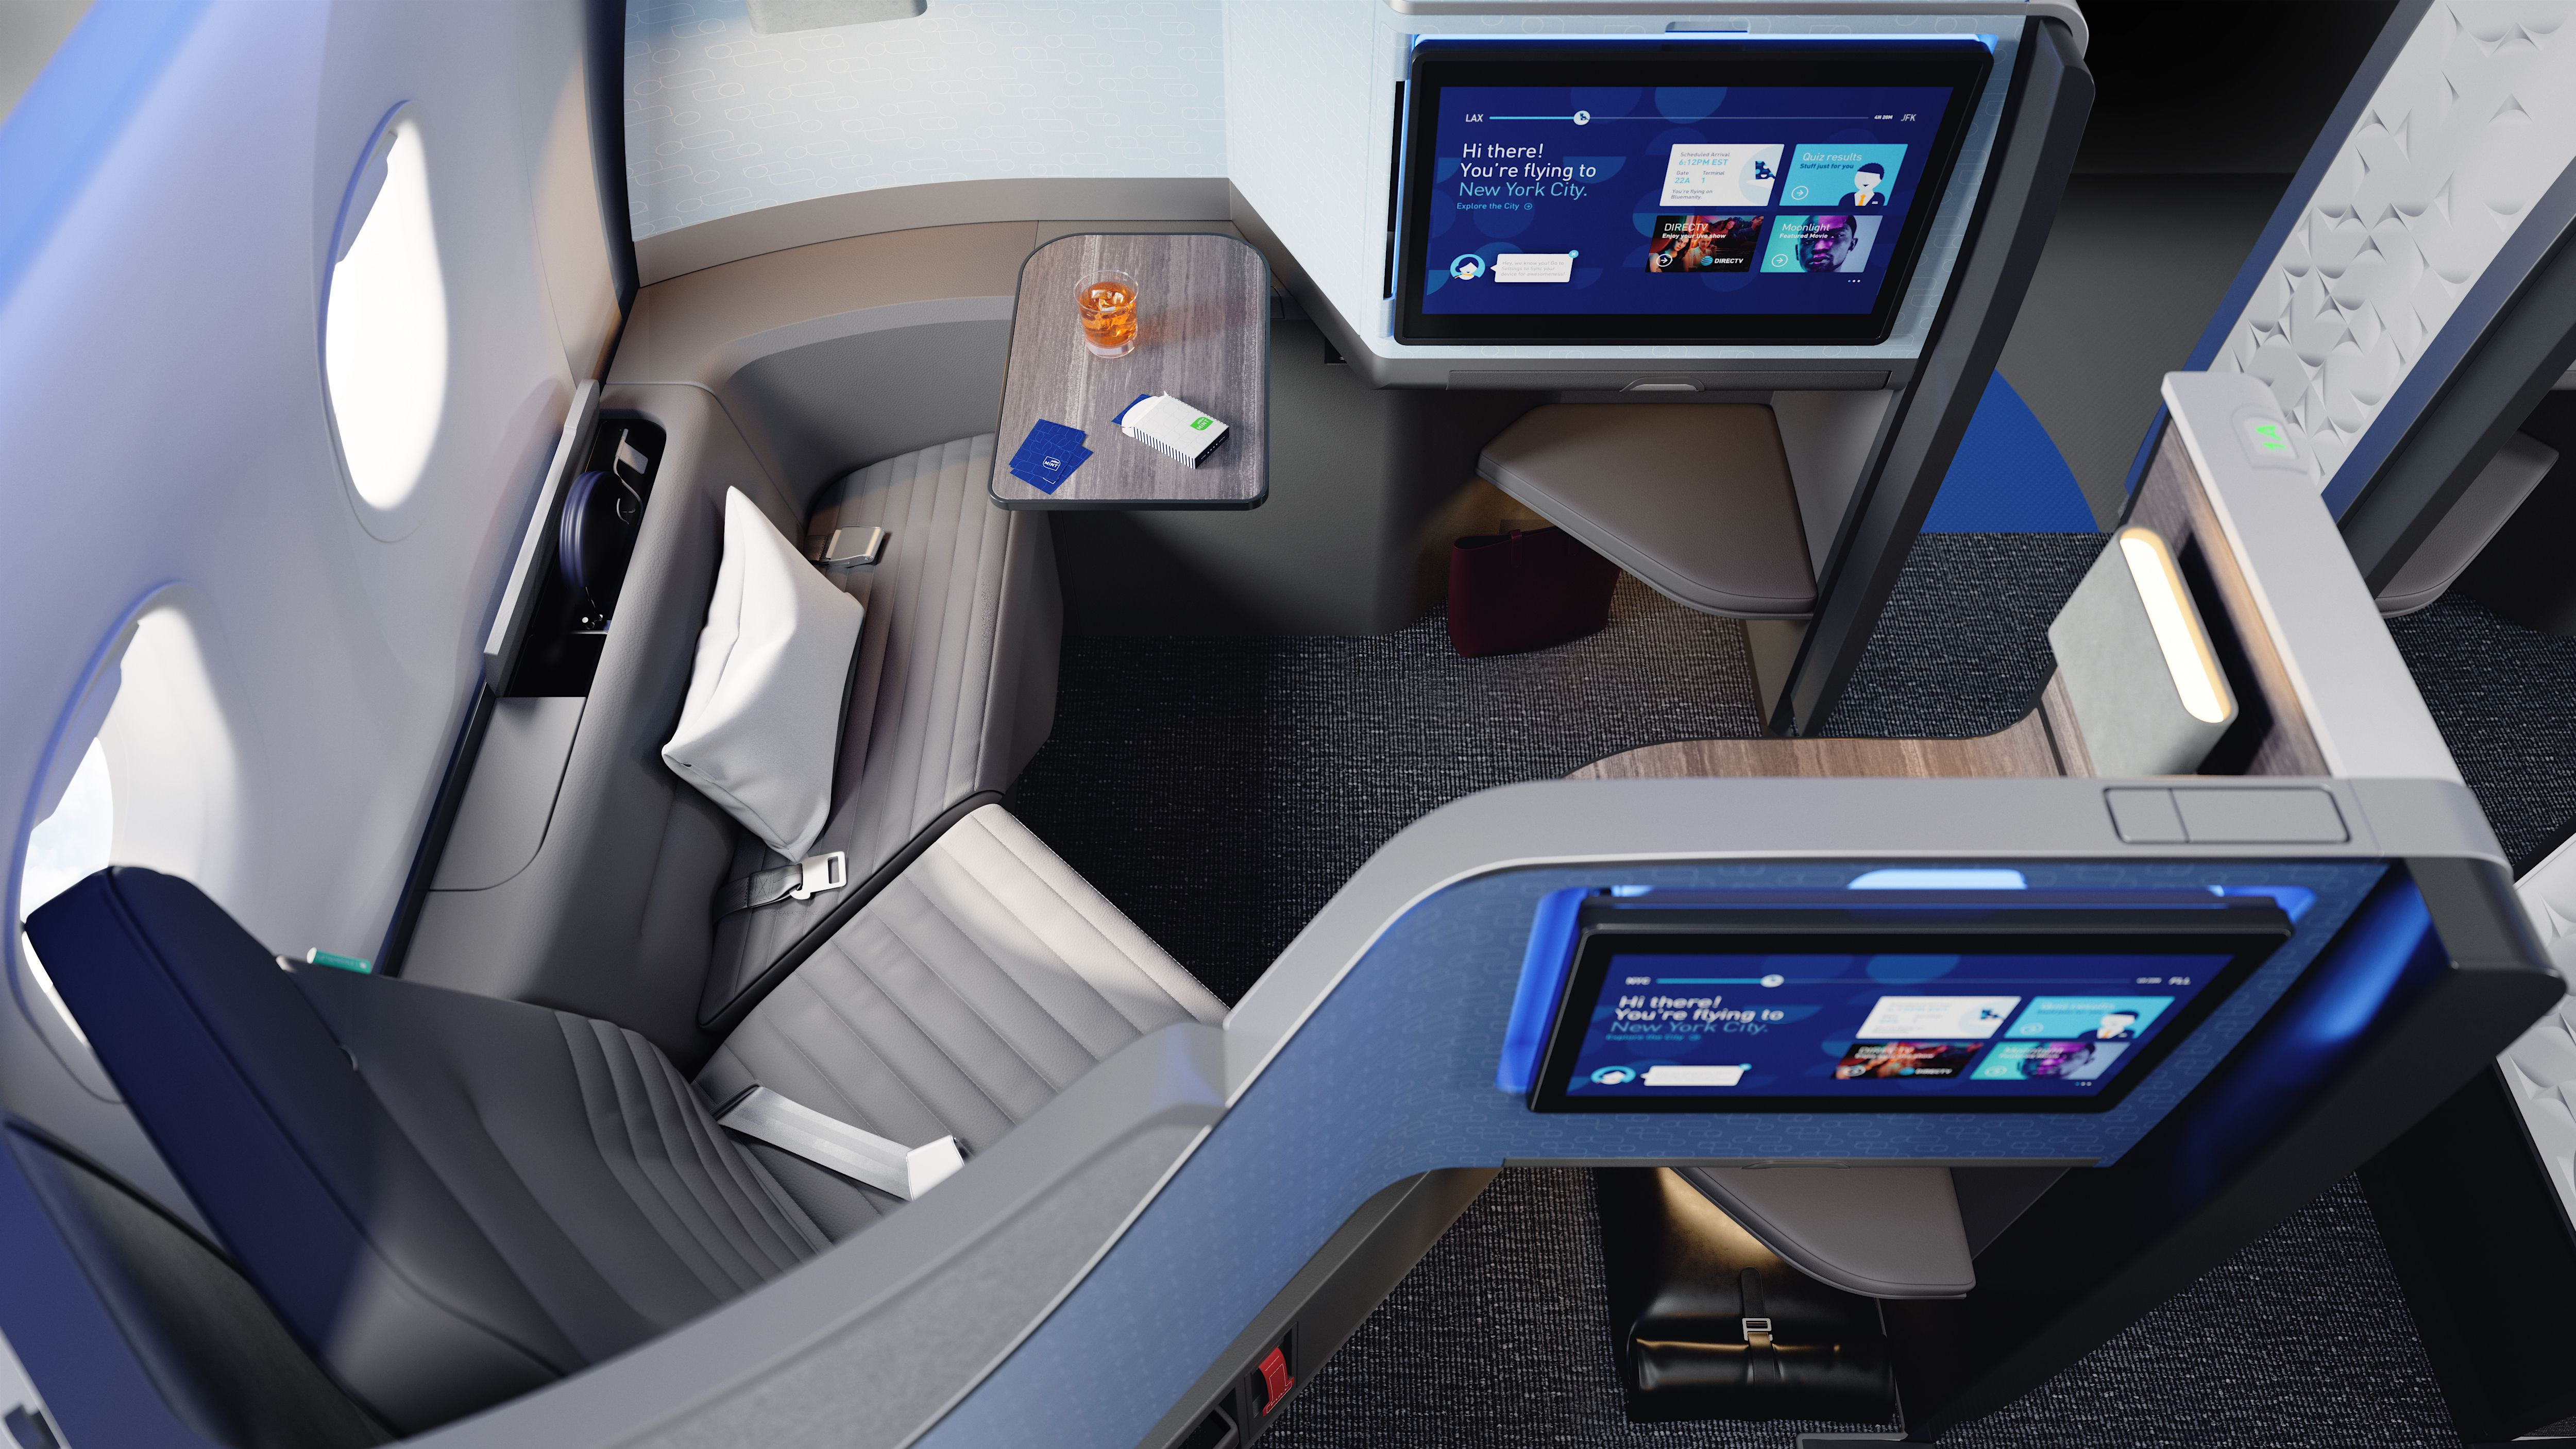 JetBlue Debuts All-New Business-Class Suites with Private Doors